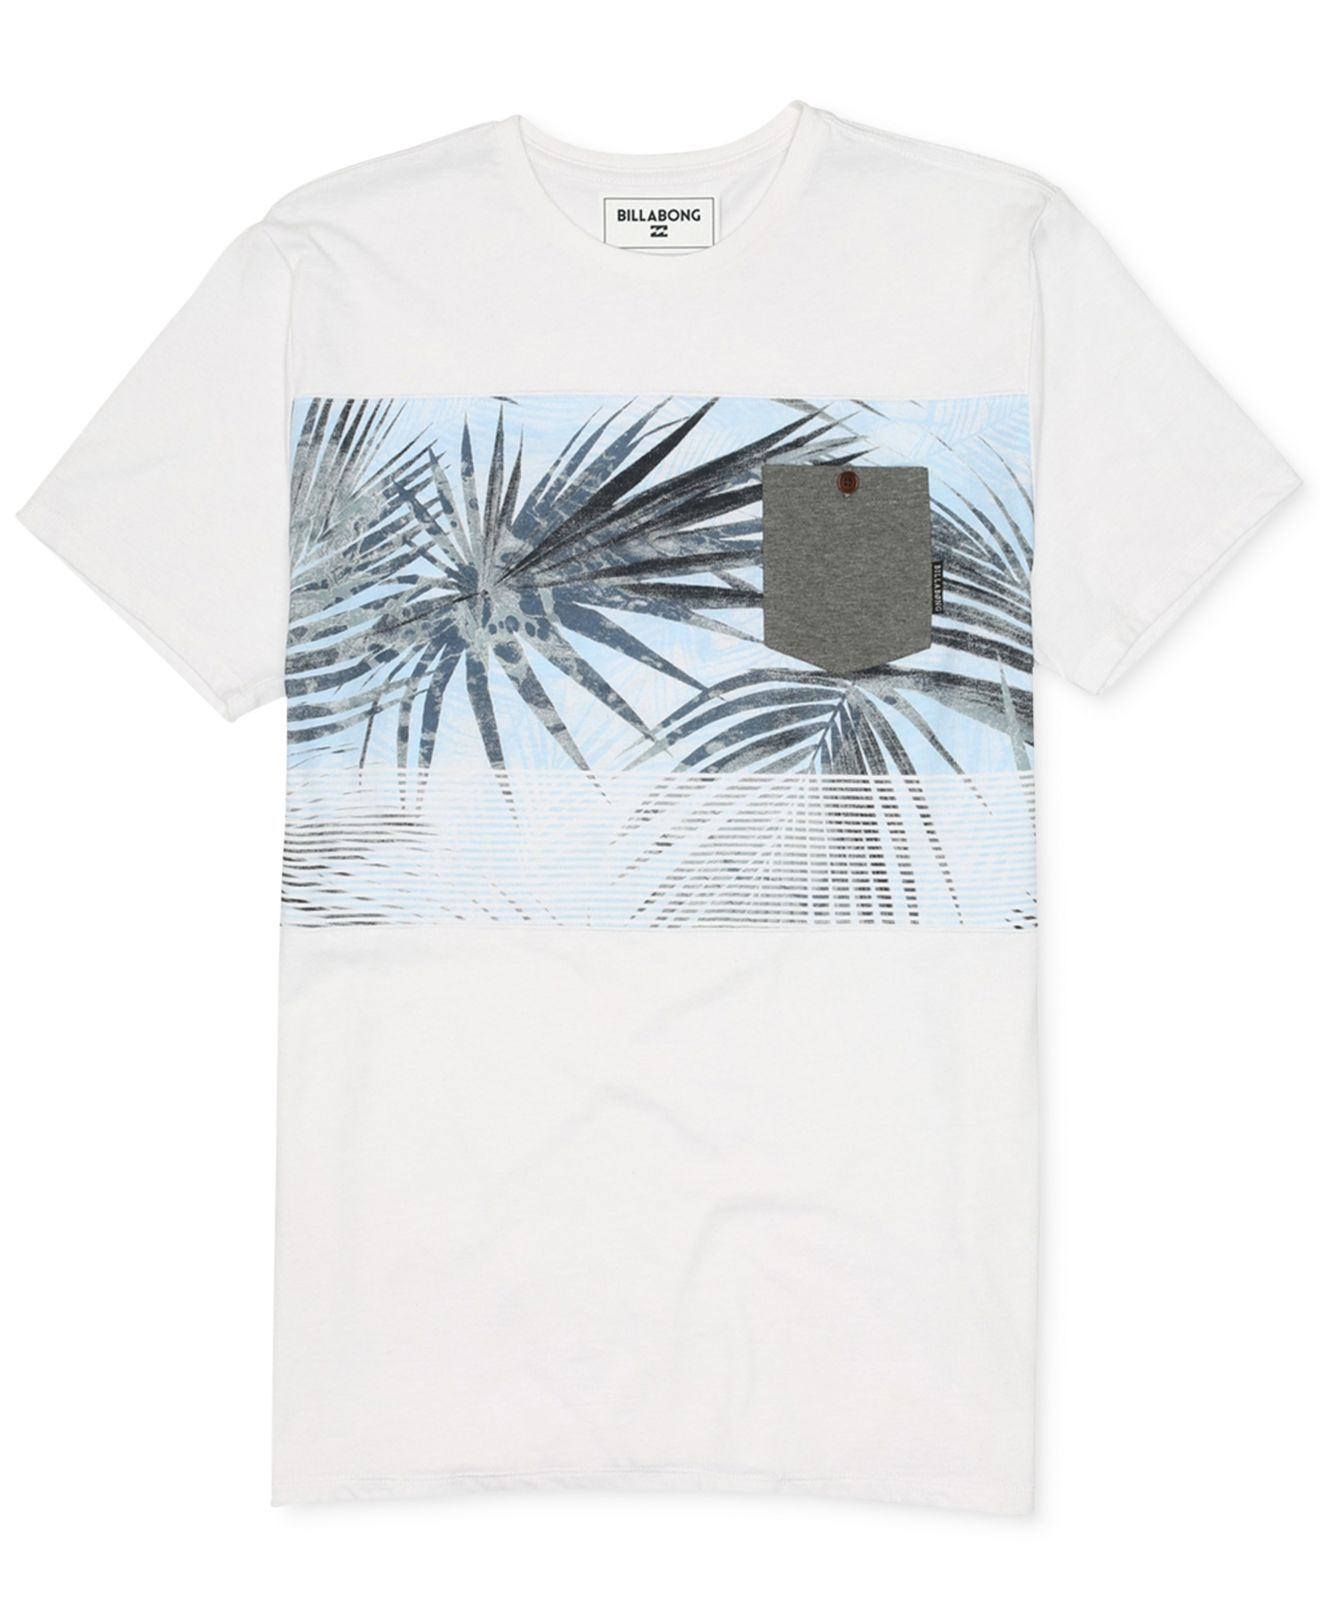 Billabong palmdale graphic t shirt in white for men lyst for T shirt printing in palmdale ca